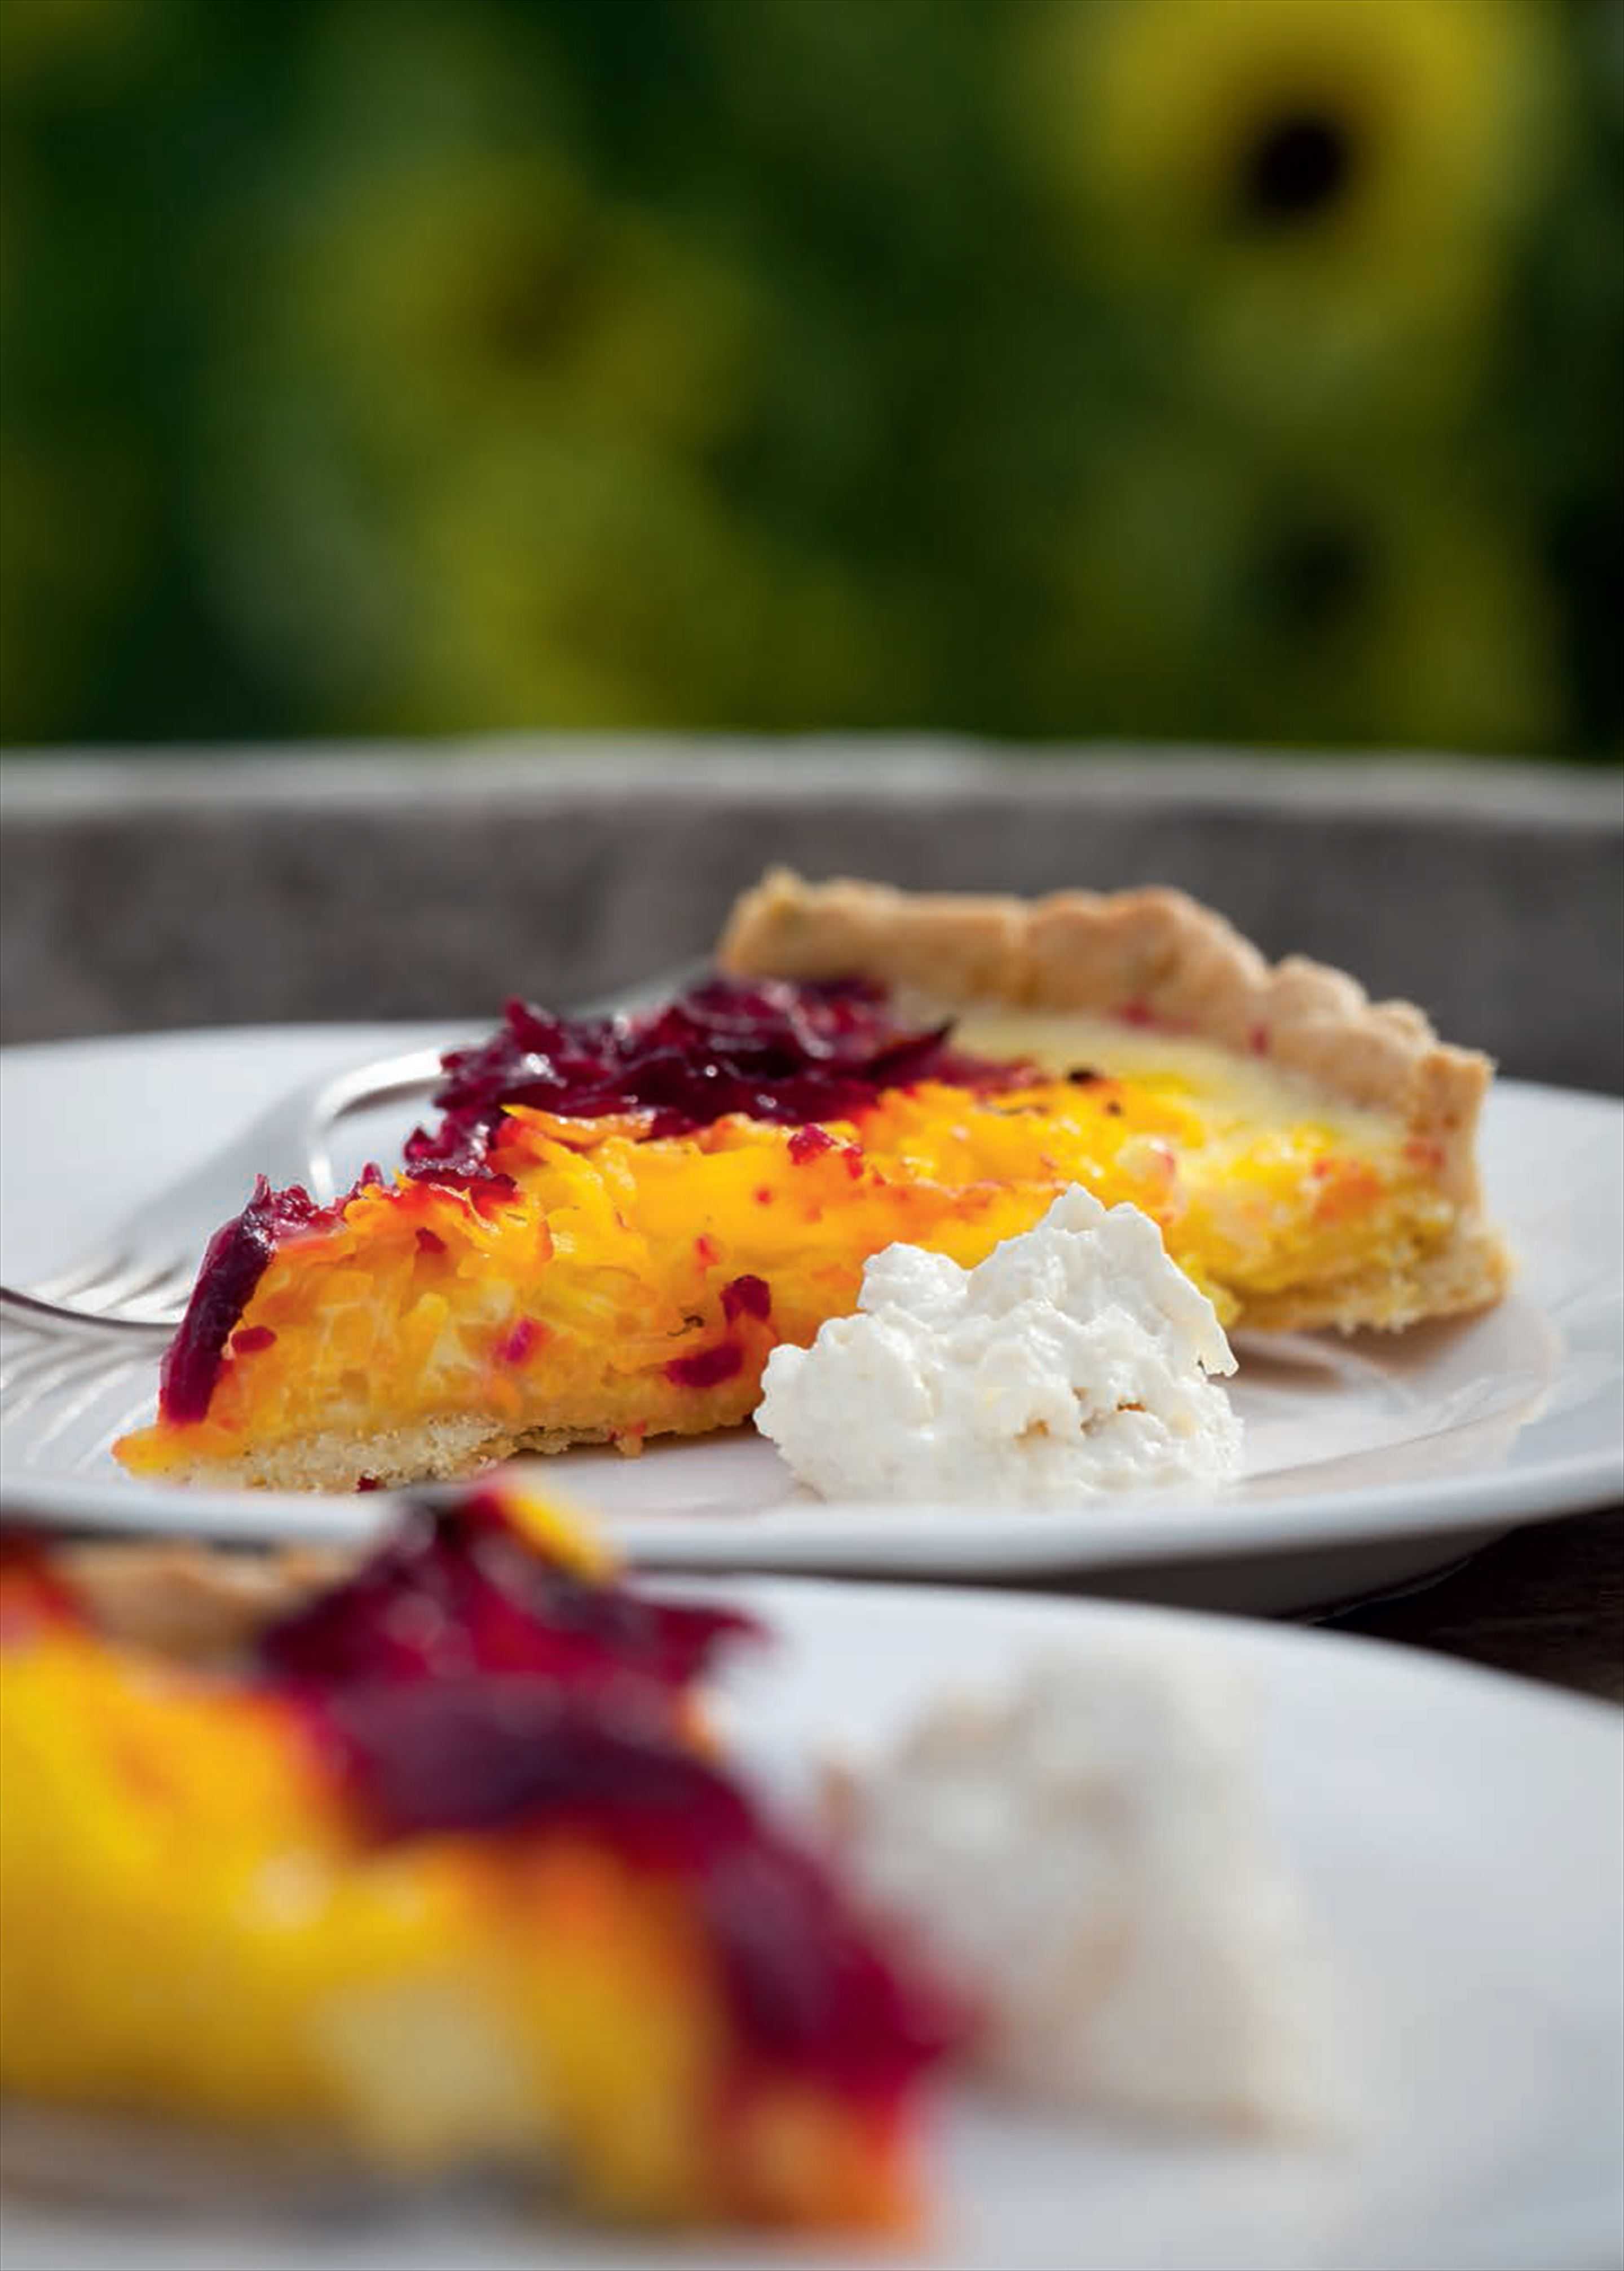 Beetroot tart with horseradish cream